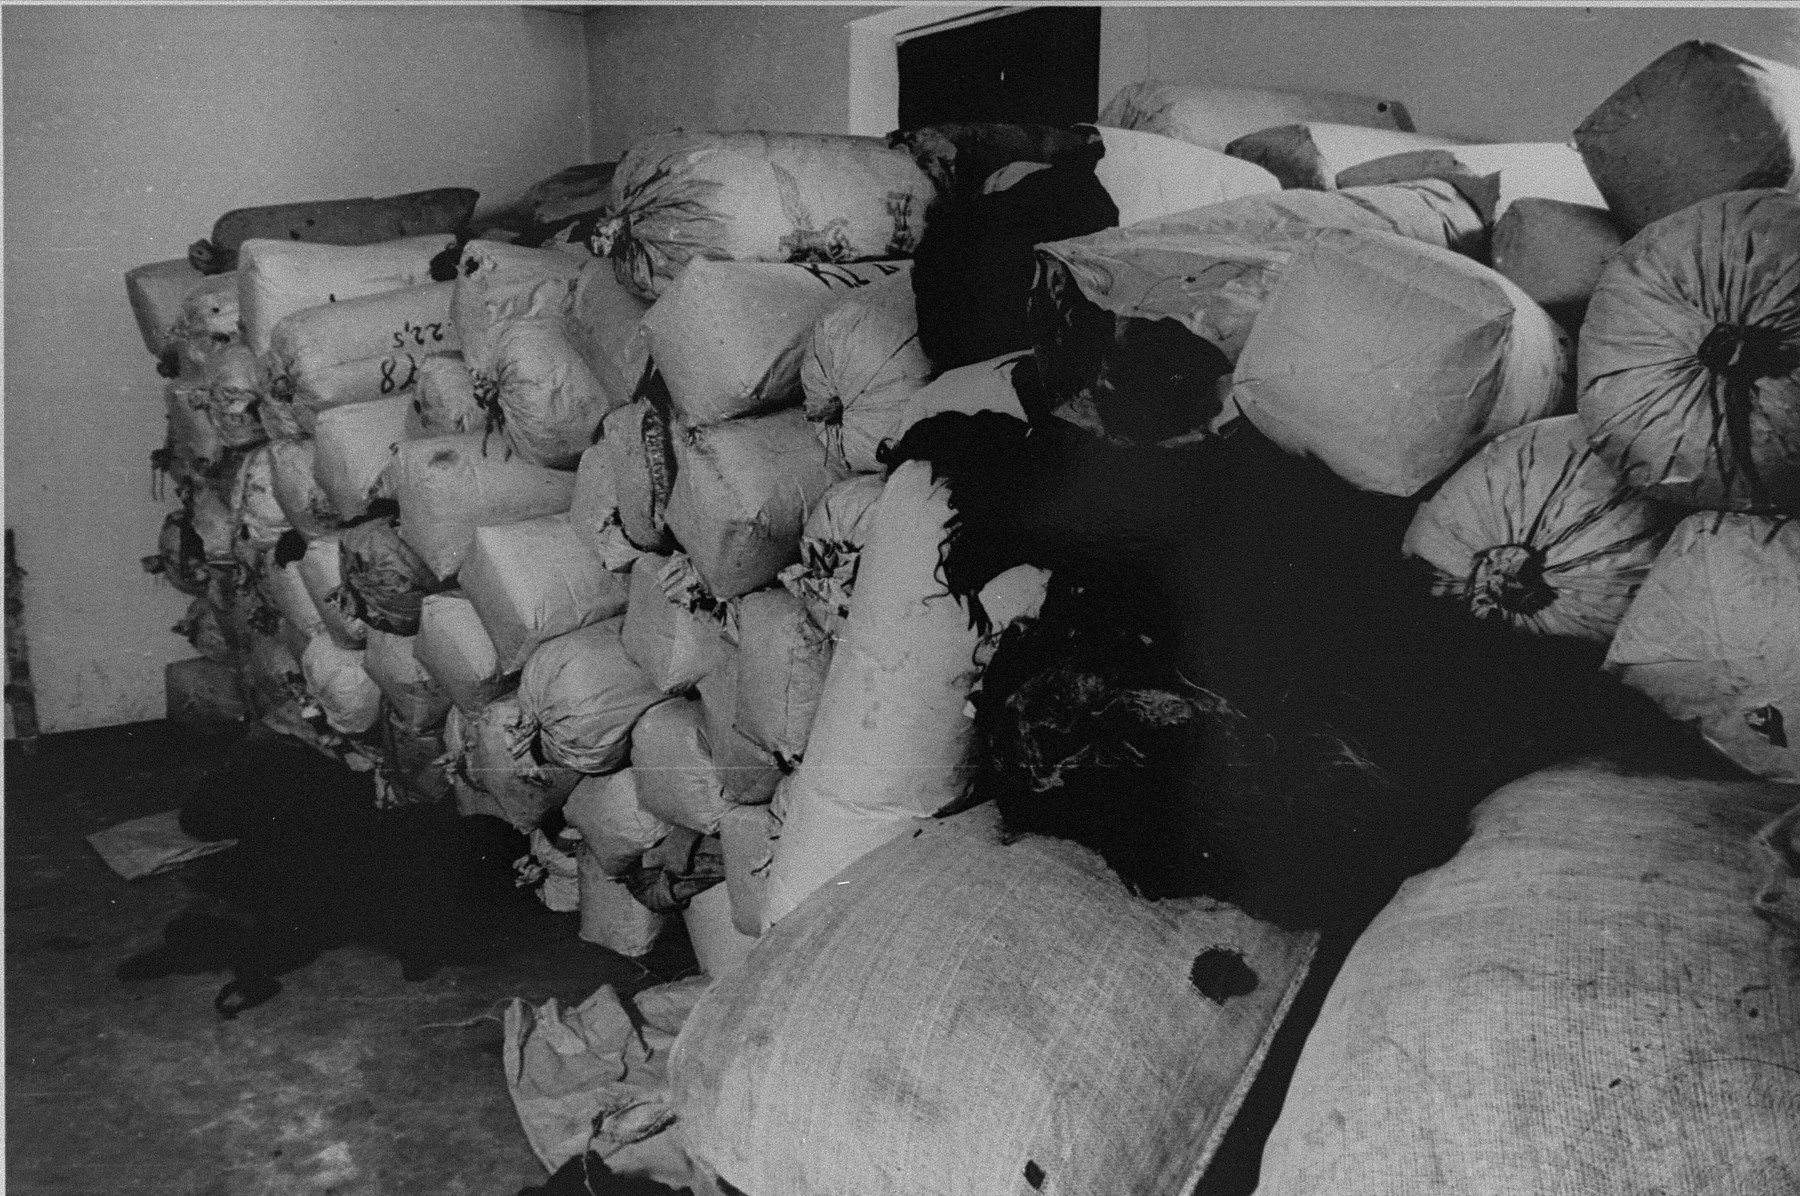 Bales of human hair ready for shipment to Germany found in one the Auschwitz warehouses when the camp was liberated.   In Auschwitz 7,000 kilos of human hair was found at liberation.